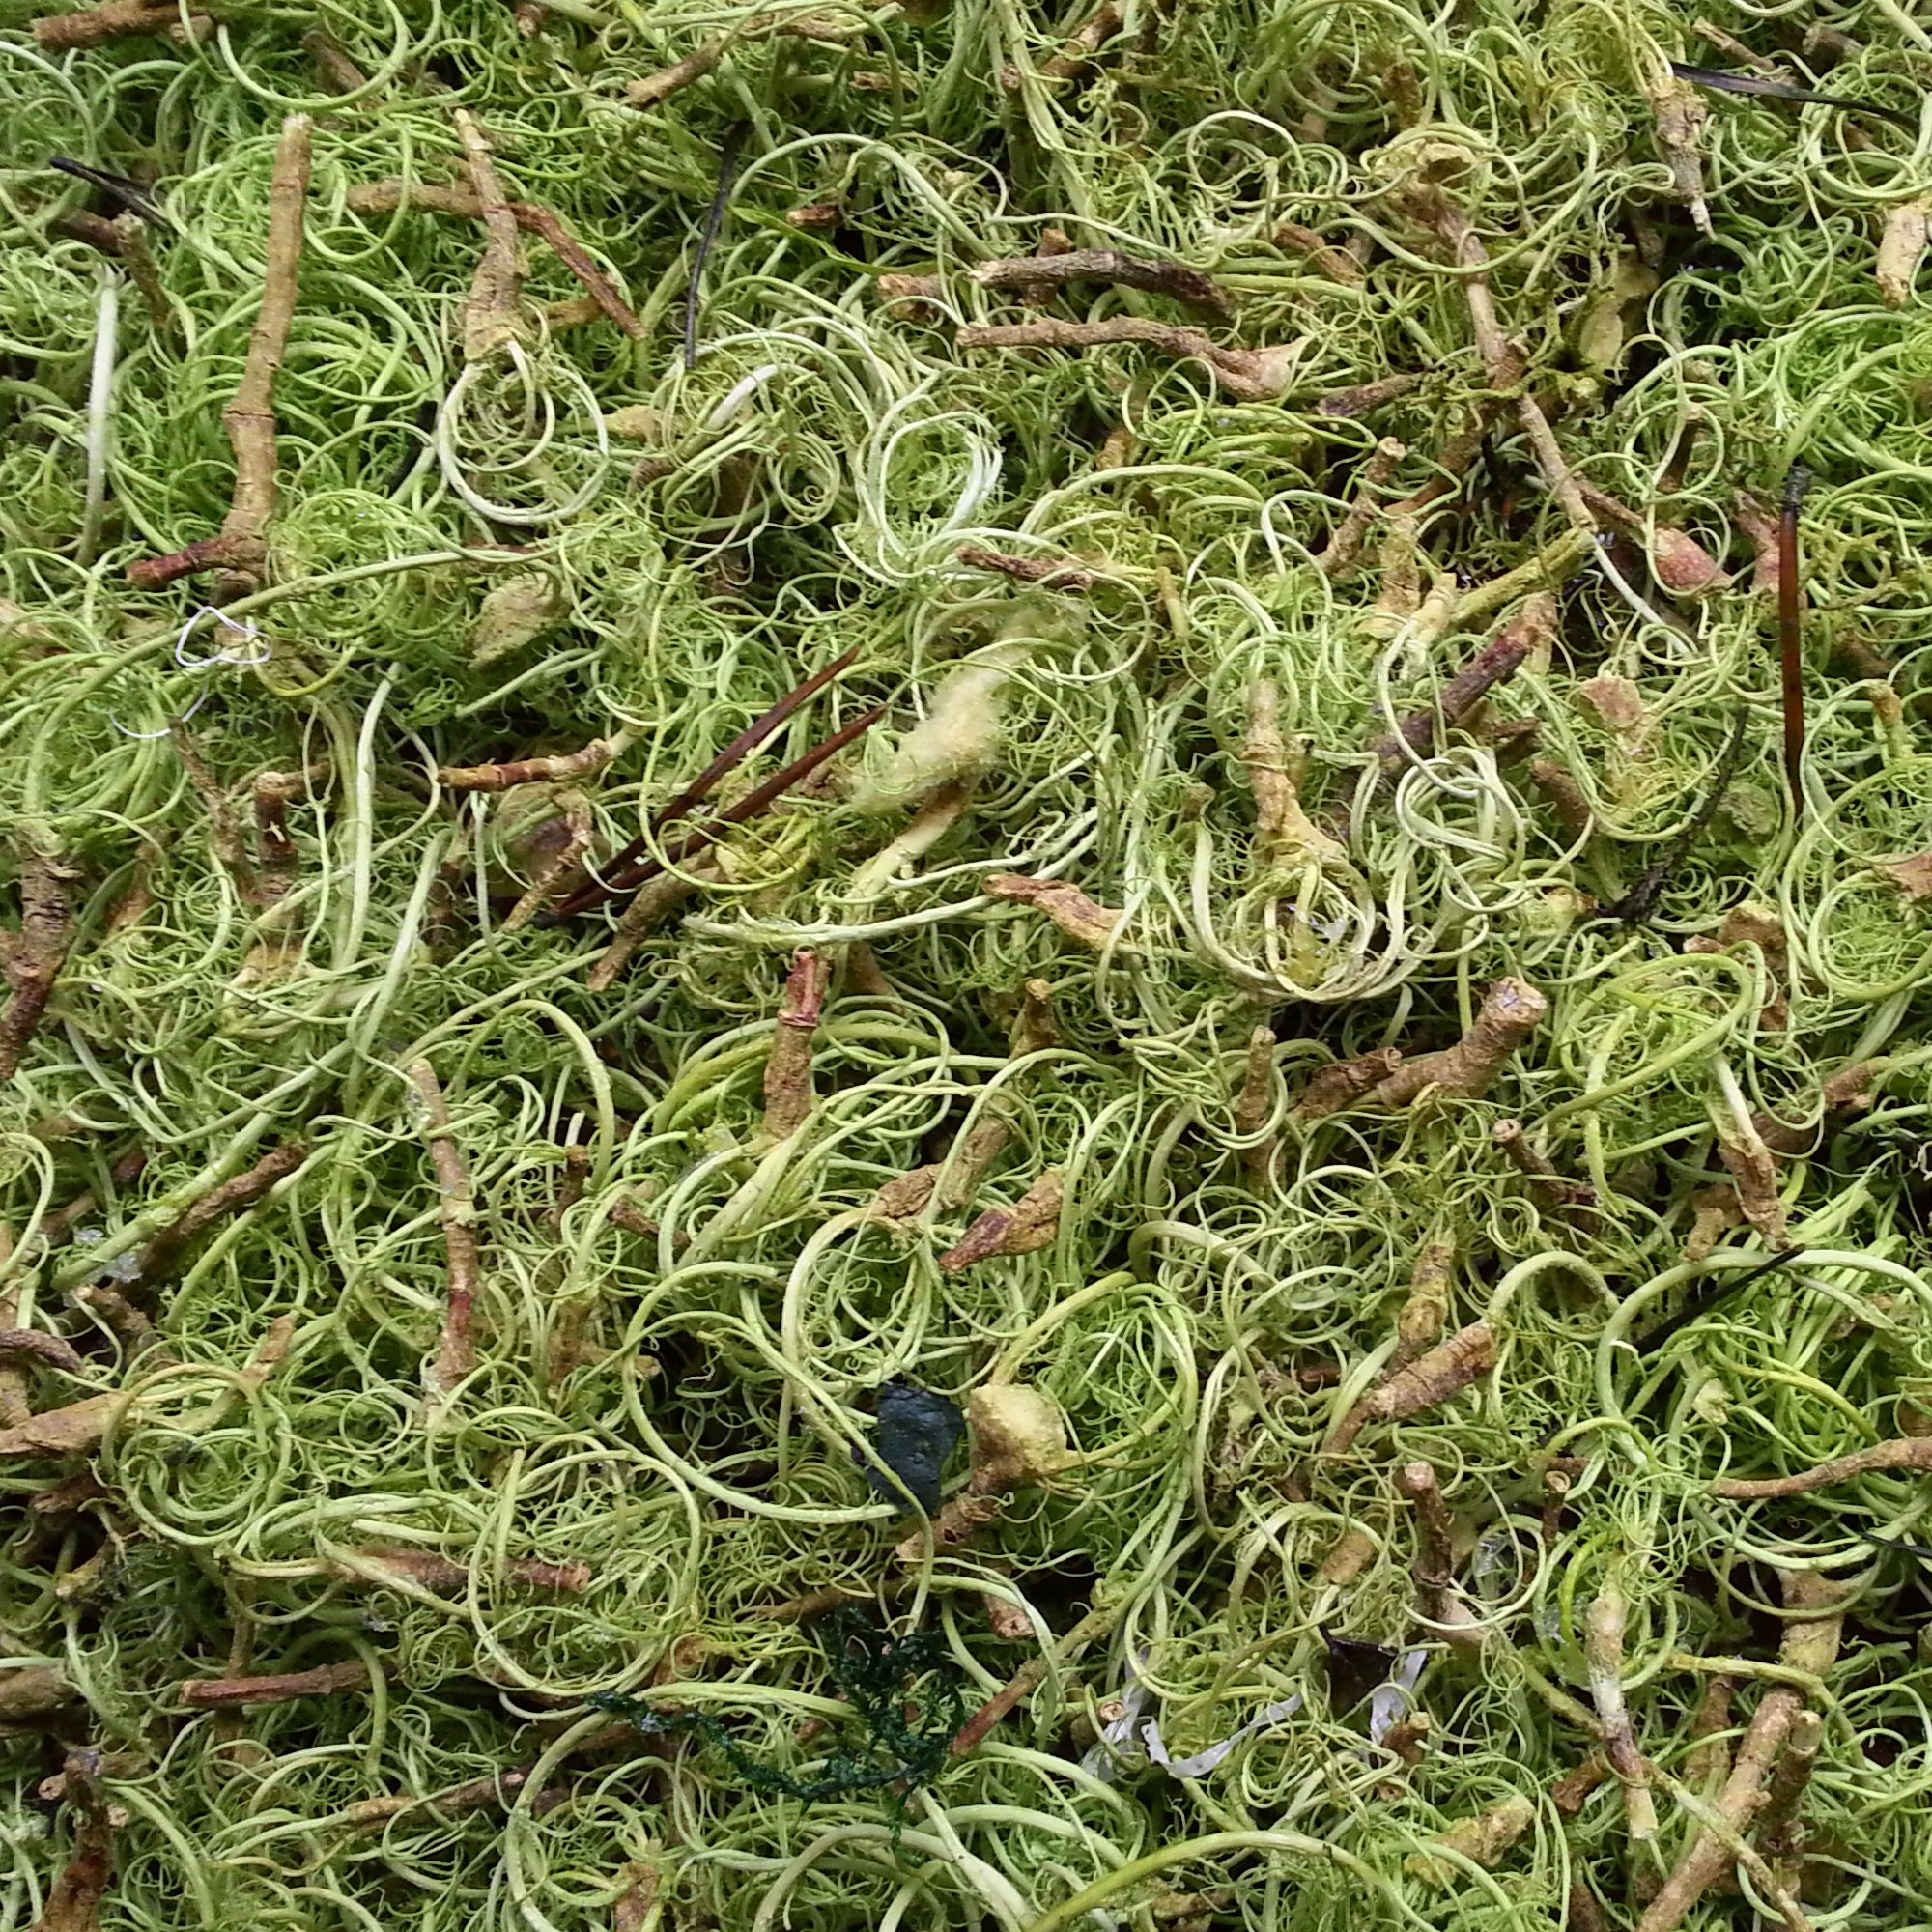 Curly Moss or Louisiana Moss in the color sring green